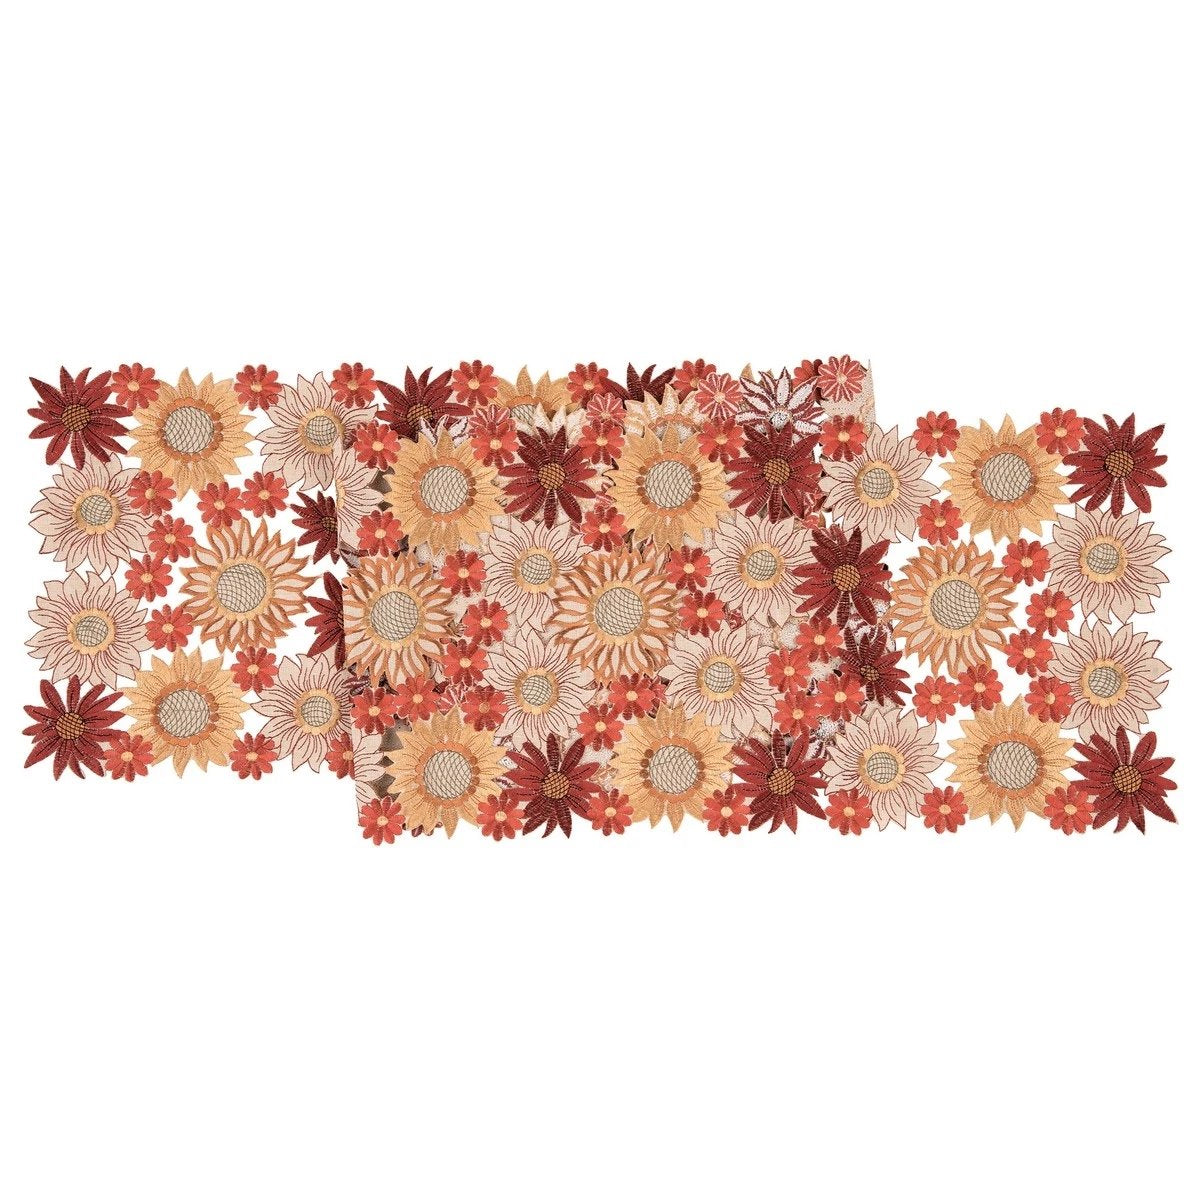 Fall Flowers Table Runner with embriodered sunflowers and mums